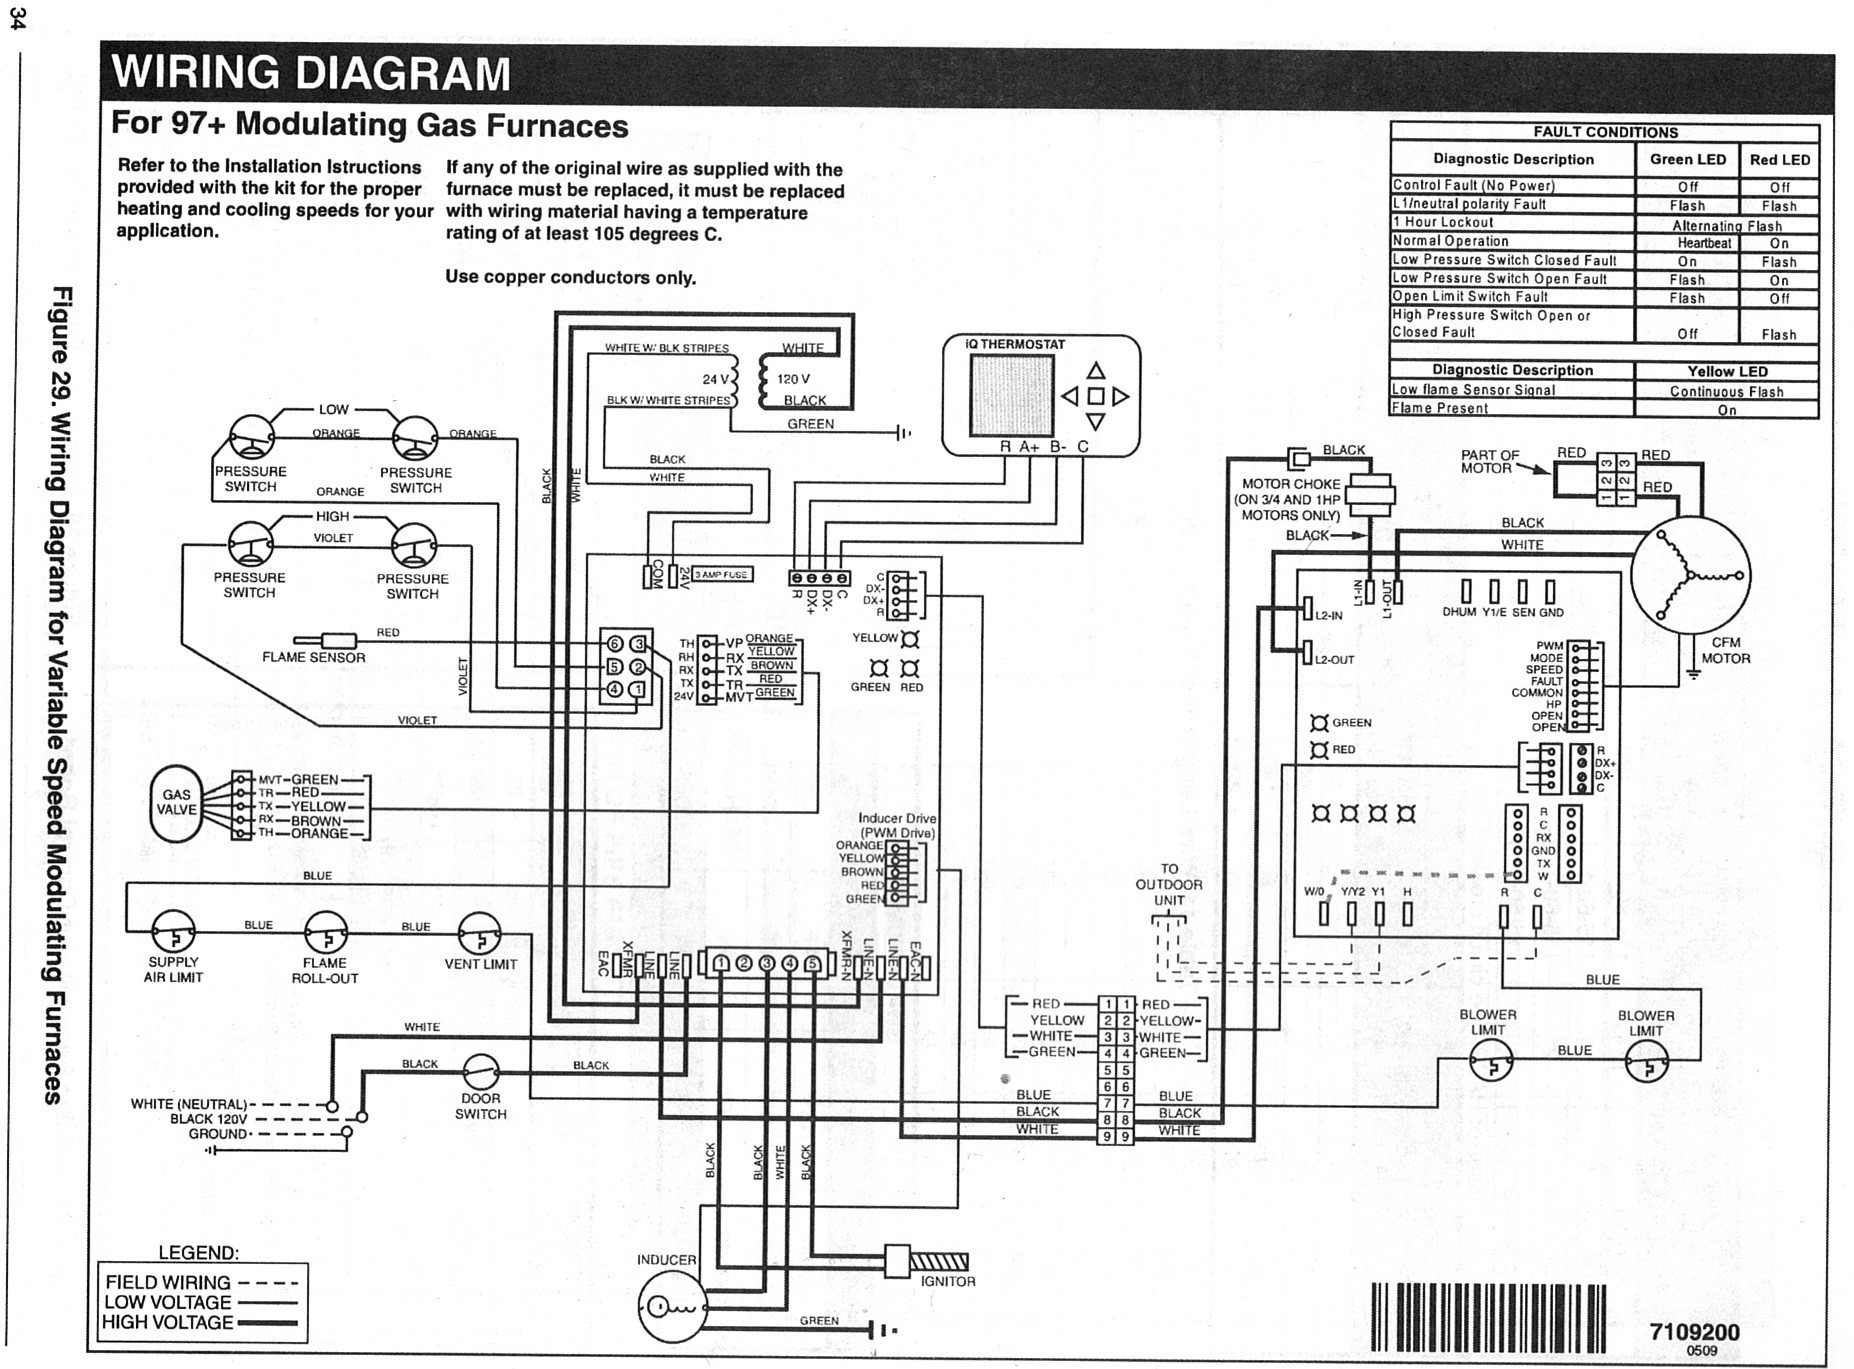 Cal Spa Wiring Diagram Cal Spa Wiring Diagram Best for with Power Flame Of Cal Spa Wiring Diagram